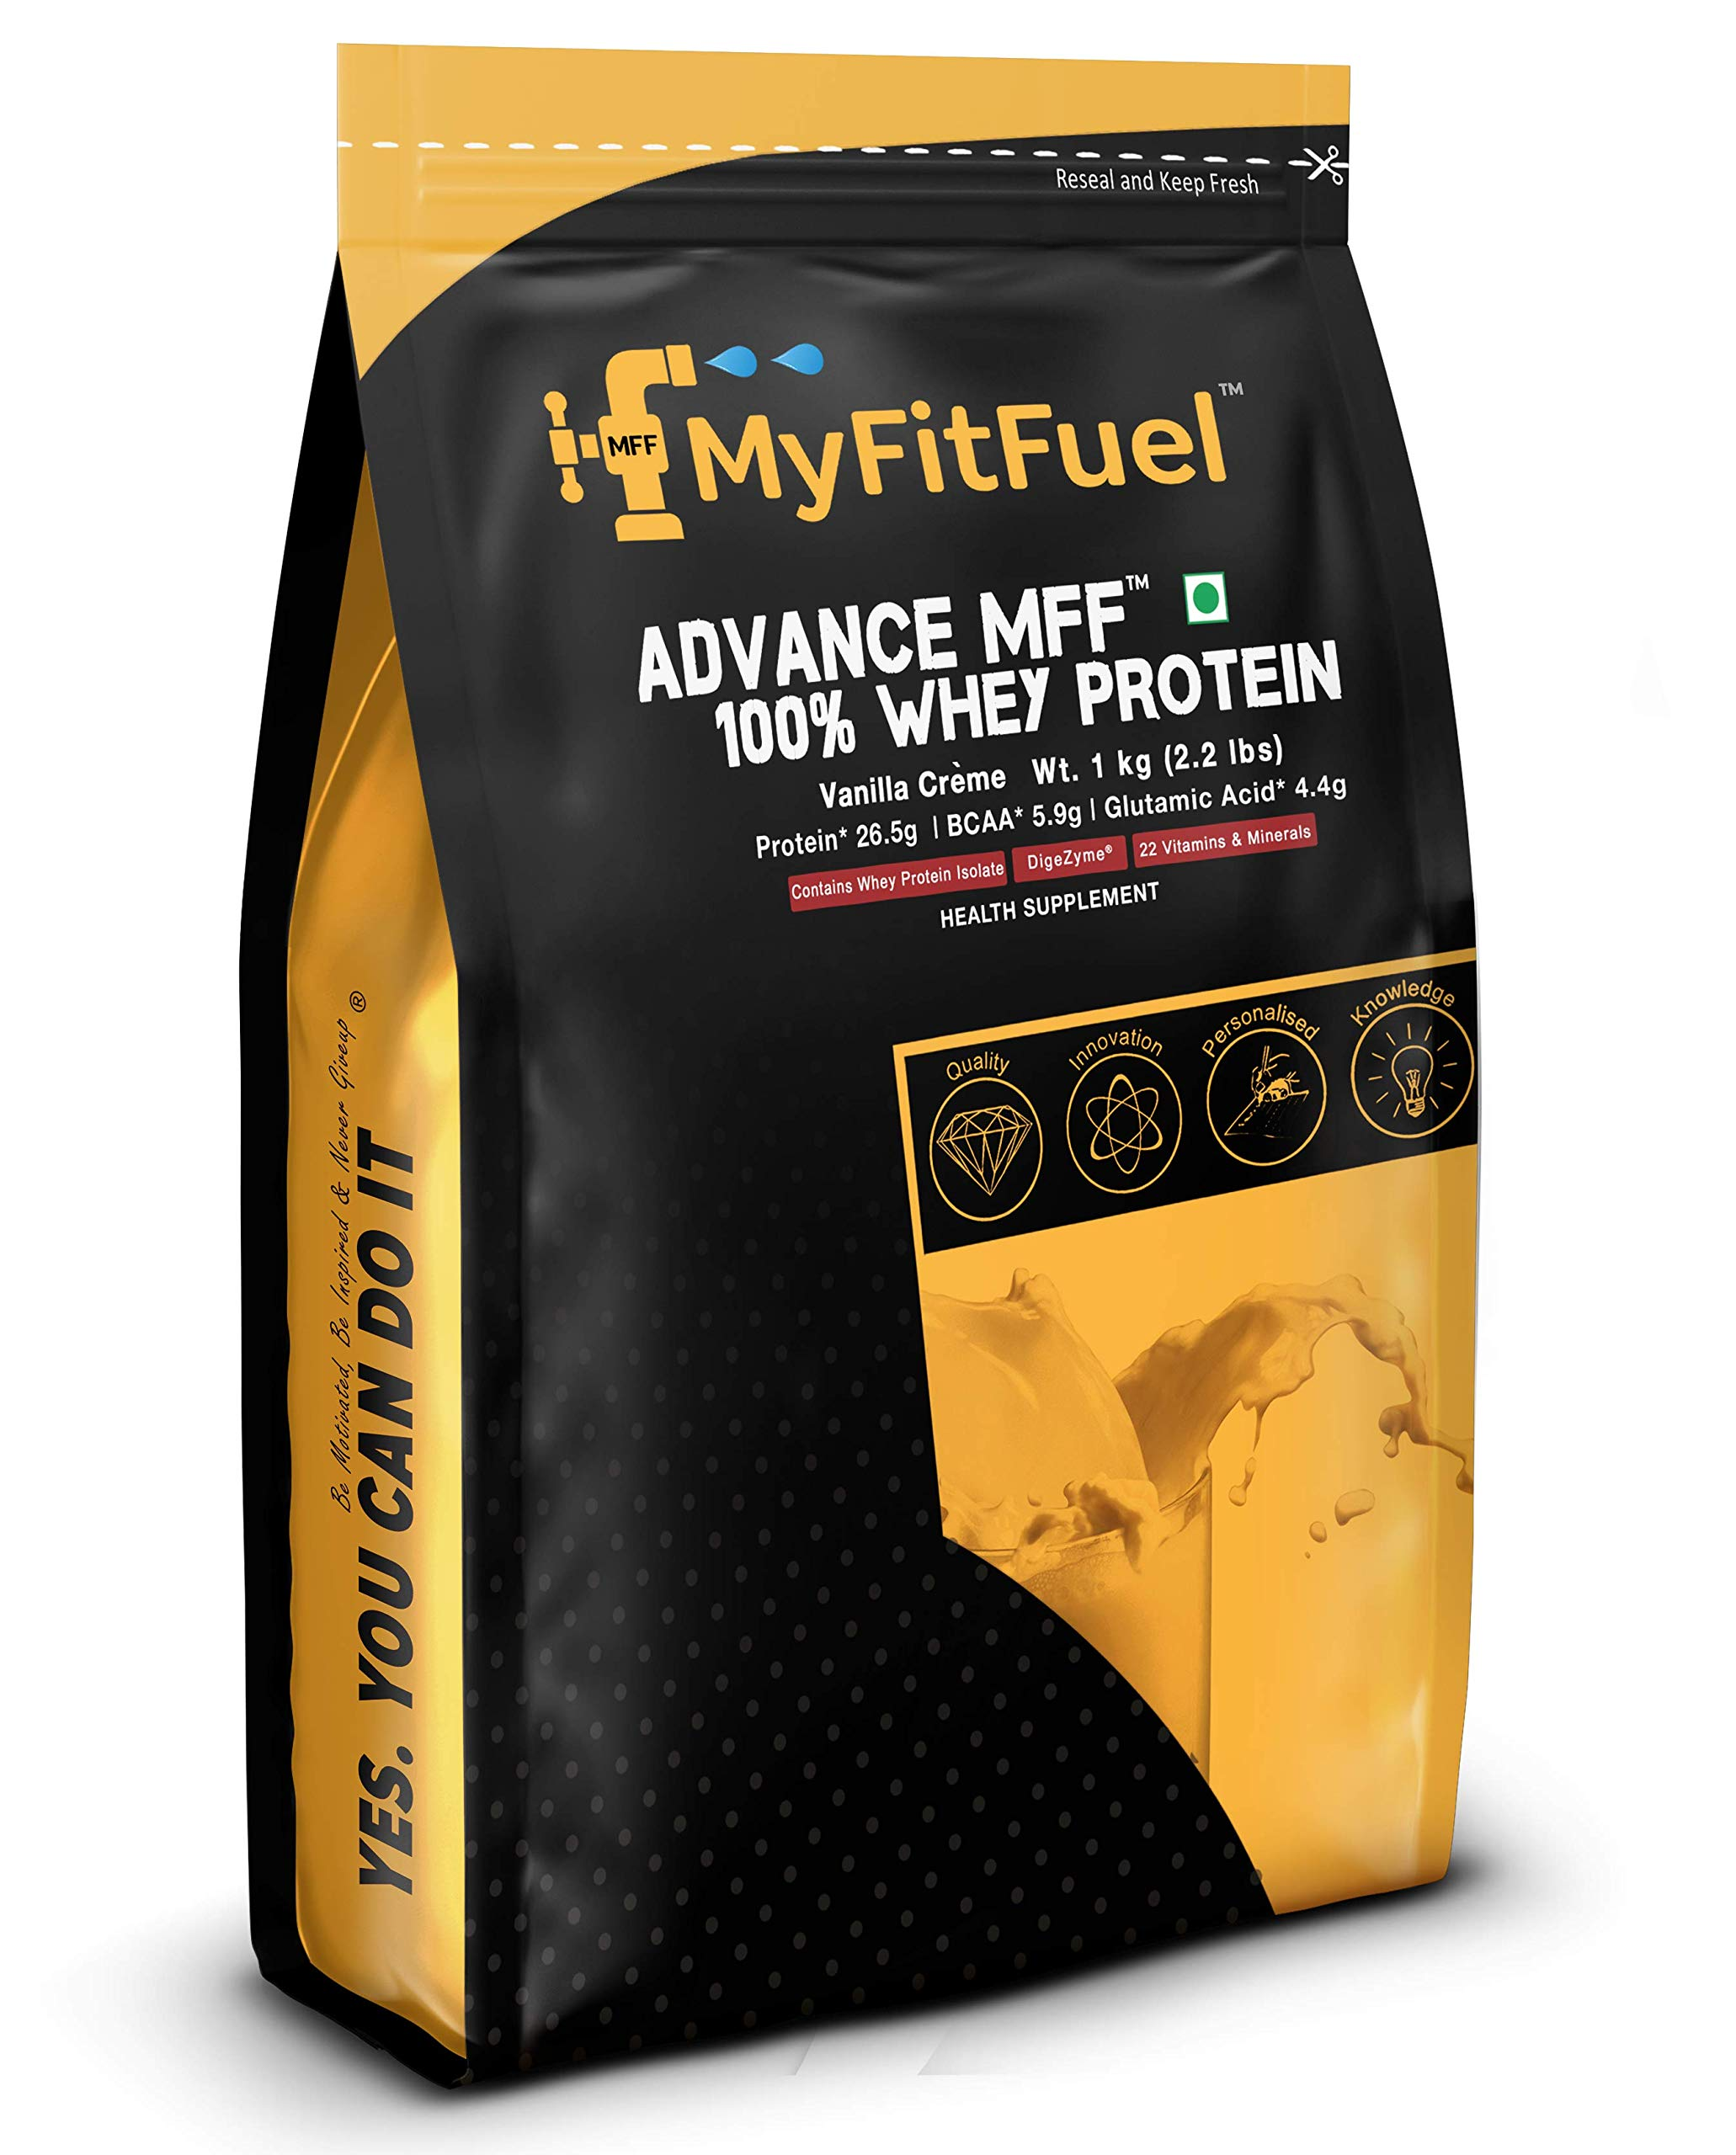 Myfitfuel Advance Mff 100% Whey Protein With Digestive Enzymes & Multi Vitamins (Vanilla Creme, 1 Kg) 28 Servings (B074SGYS23) Amazon Price History, Amazon Price Tracker